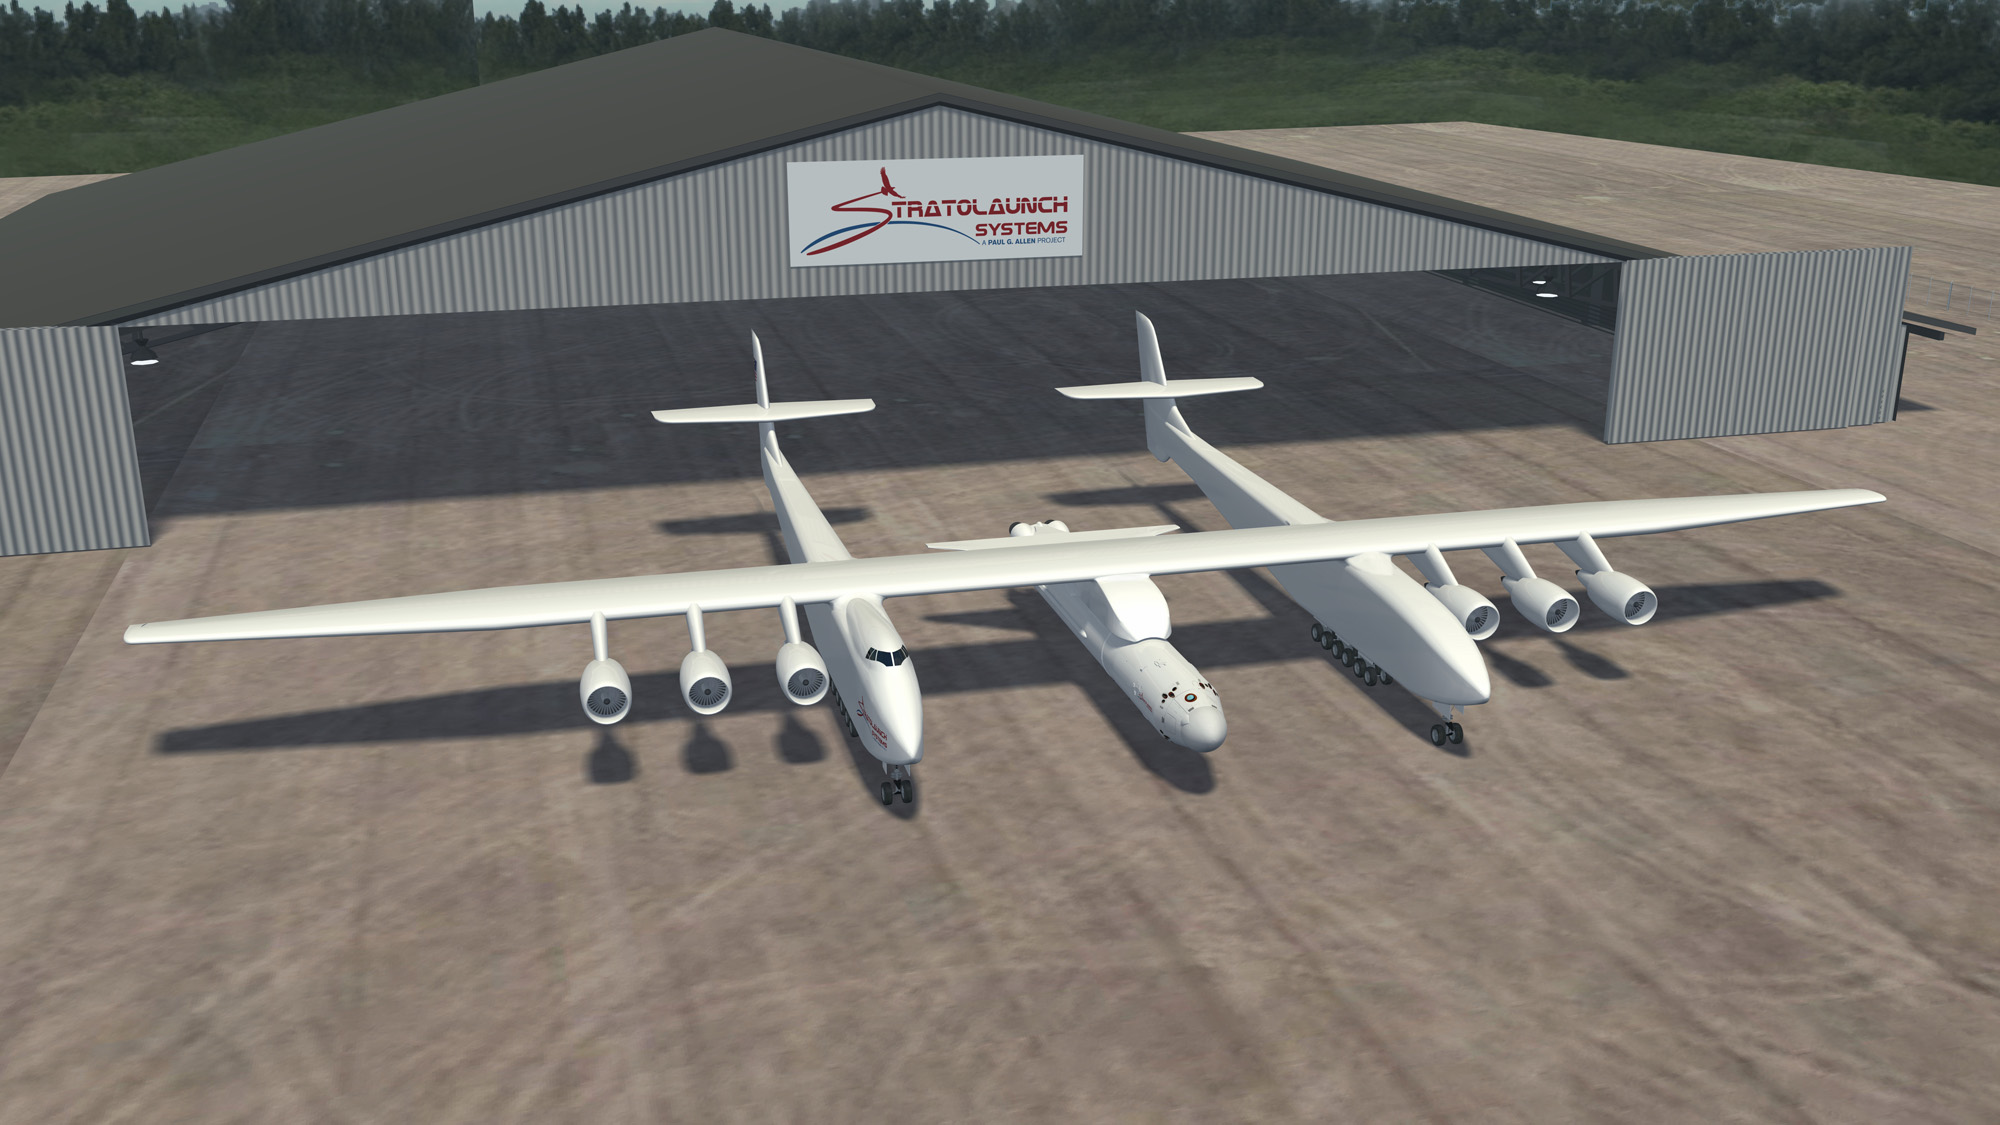 Microsoft Co-Founder Paul Allen Unveils Giant Plane for Private Space Launches